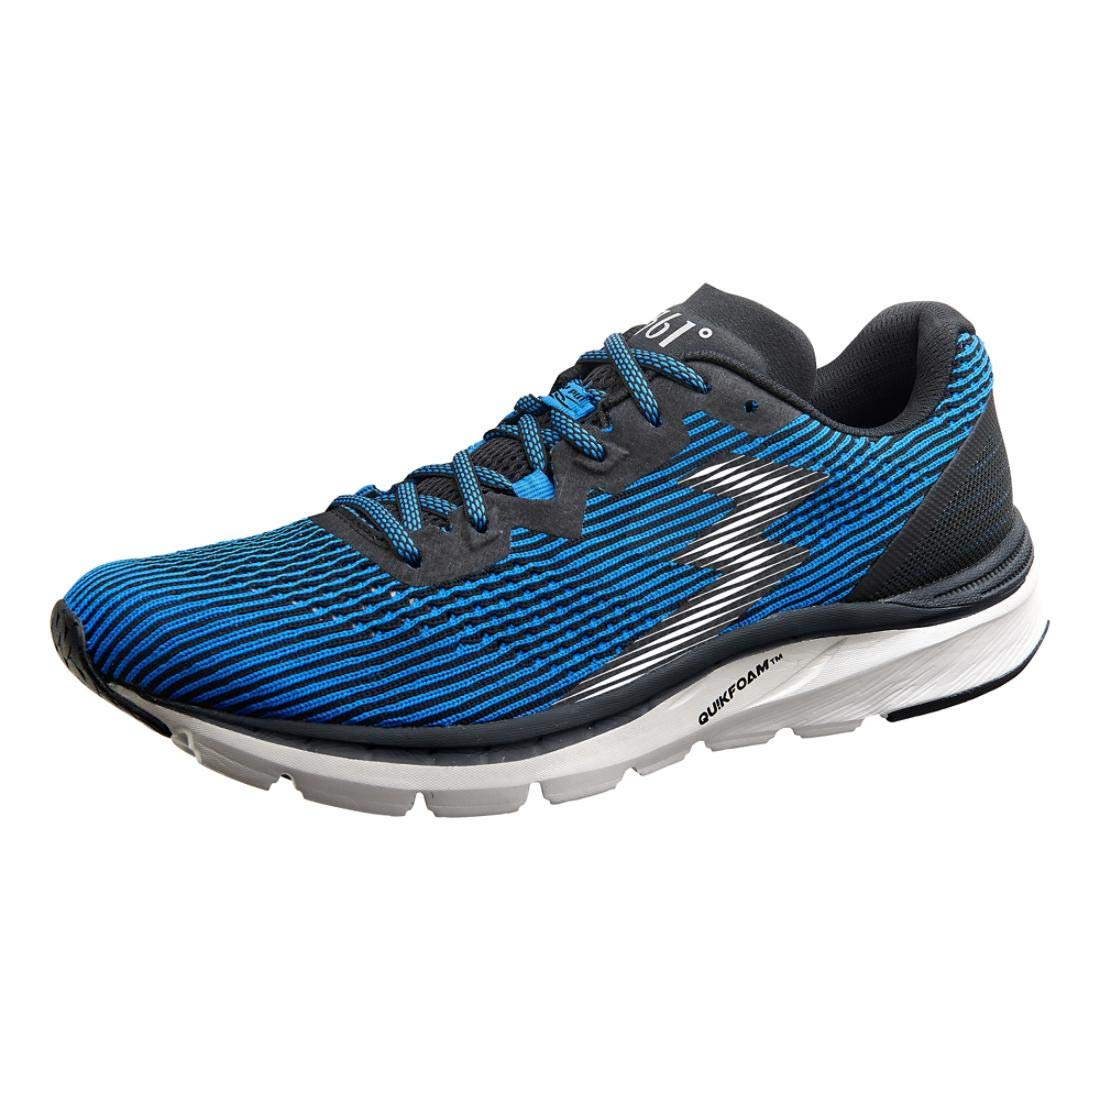 Image of 361 Degrees Men's Fantom, Black/Jolt, 12.5 Medium Running